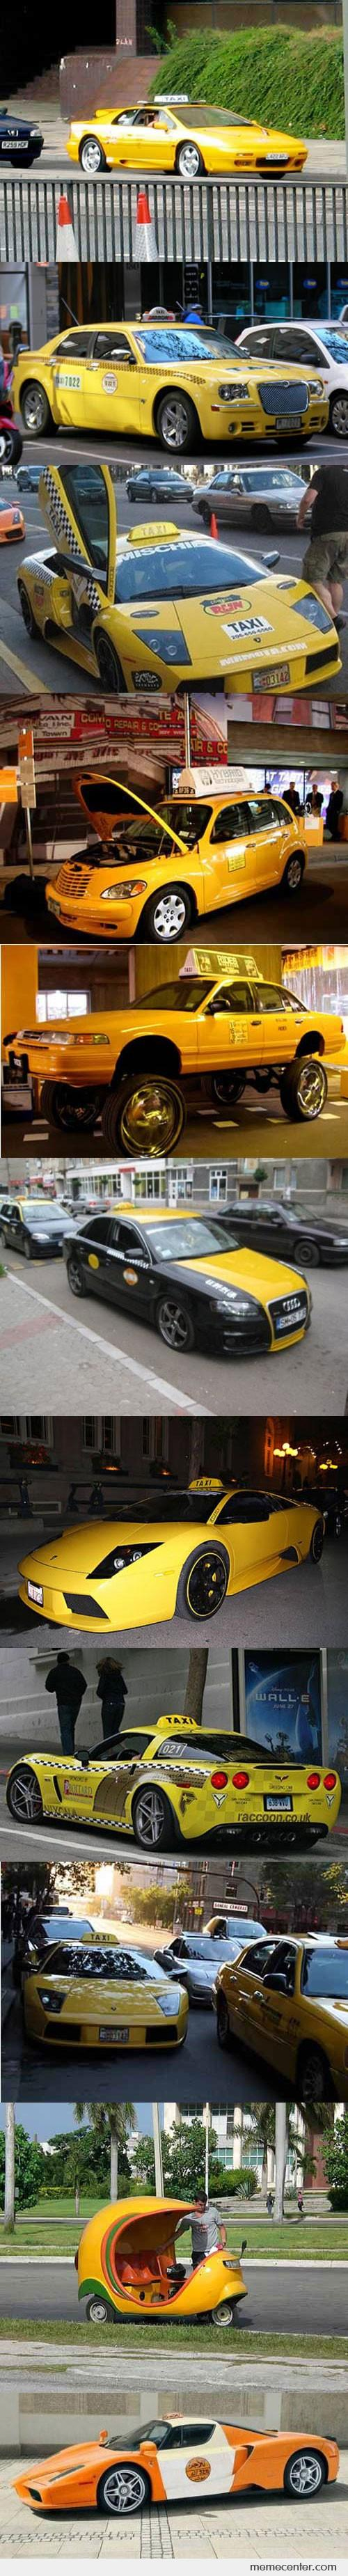 Cool Taxis Around The World